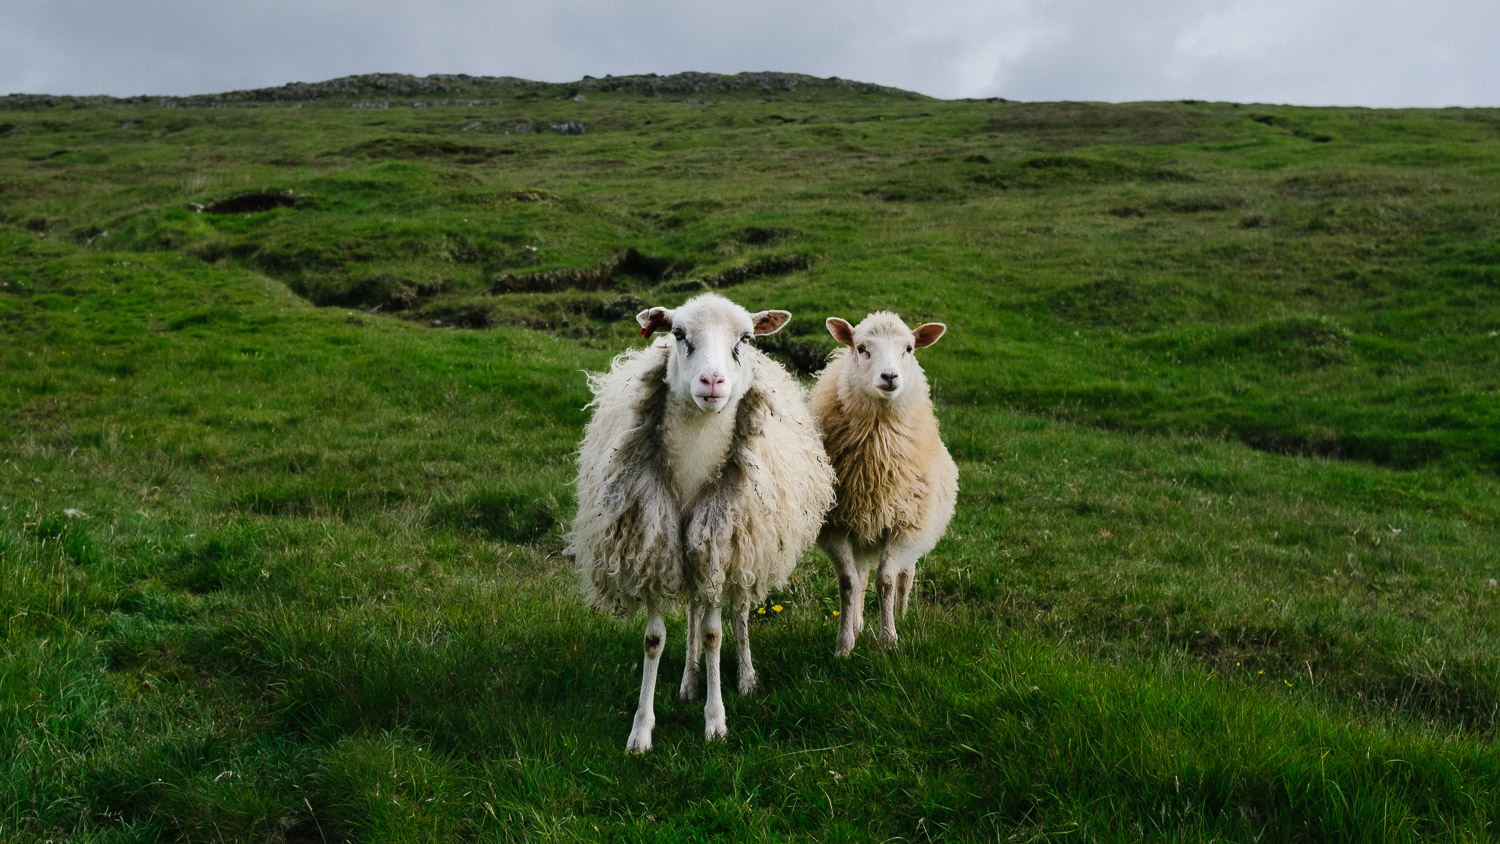 Two sheep from the Faroe Islands